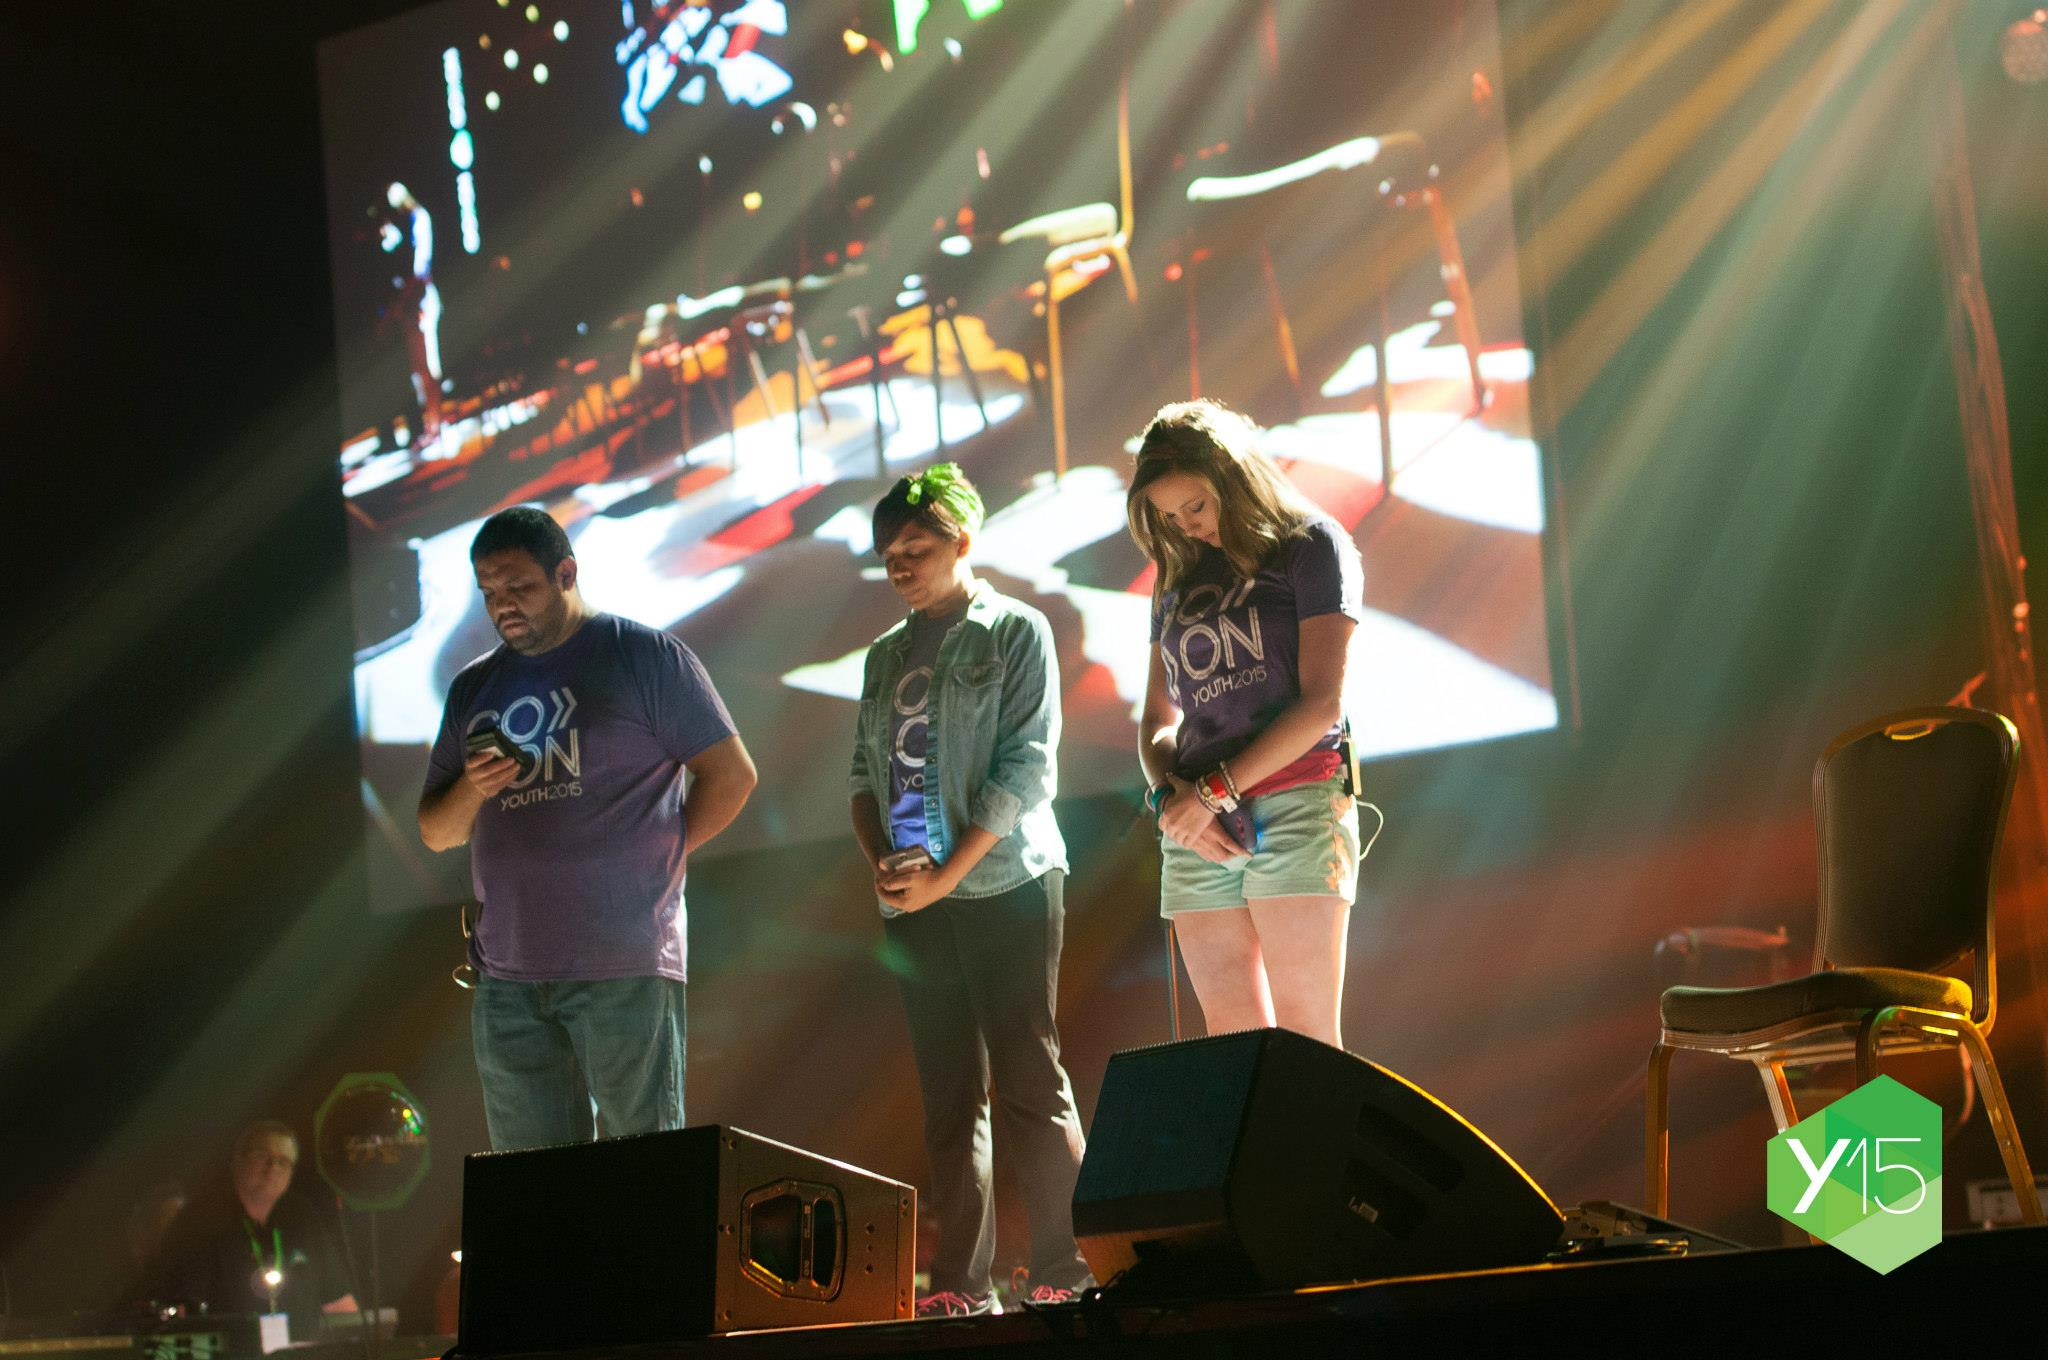 Y15 Design Team members (left to right) Miguel Padilla, Sabrina Short, and Allie Wainwright in a moment of prayer at the beginning of opening night's worship